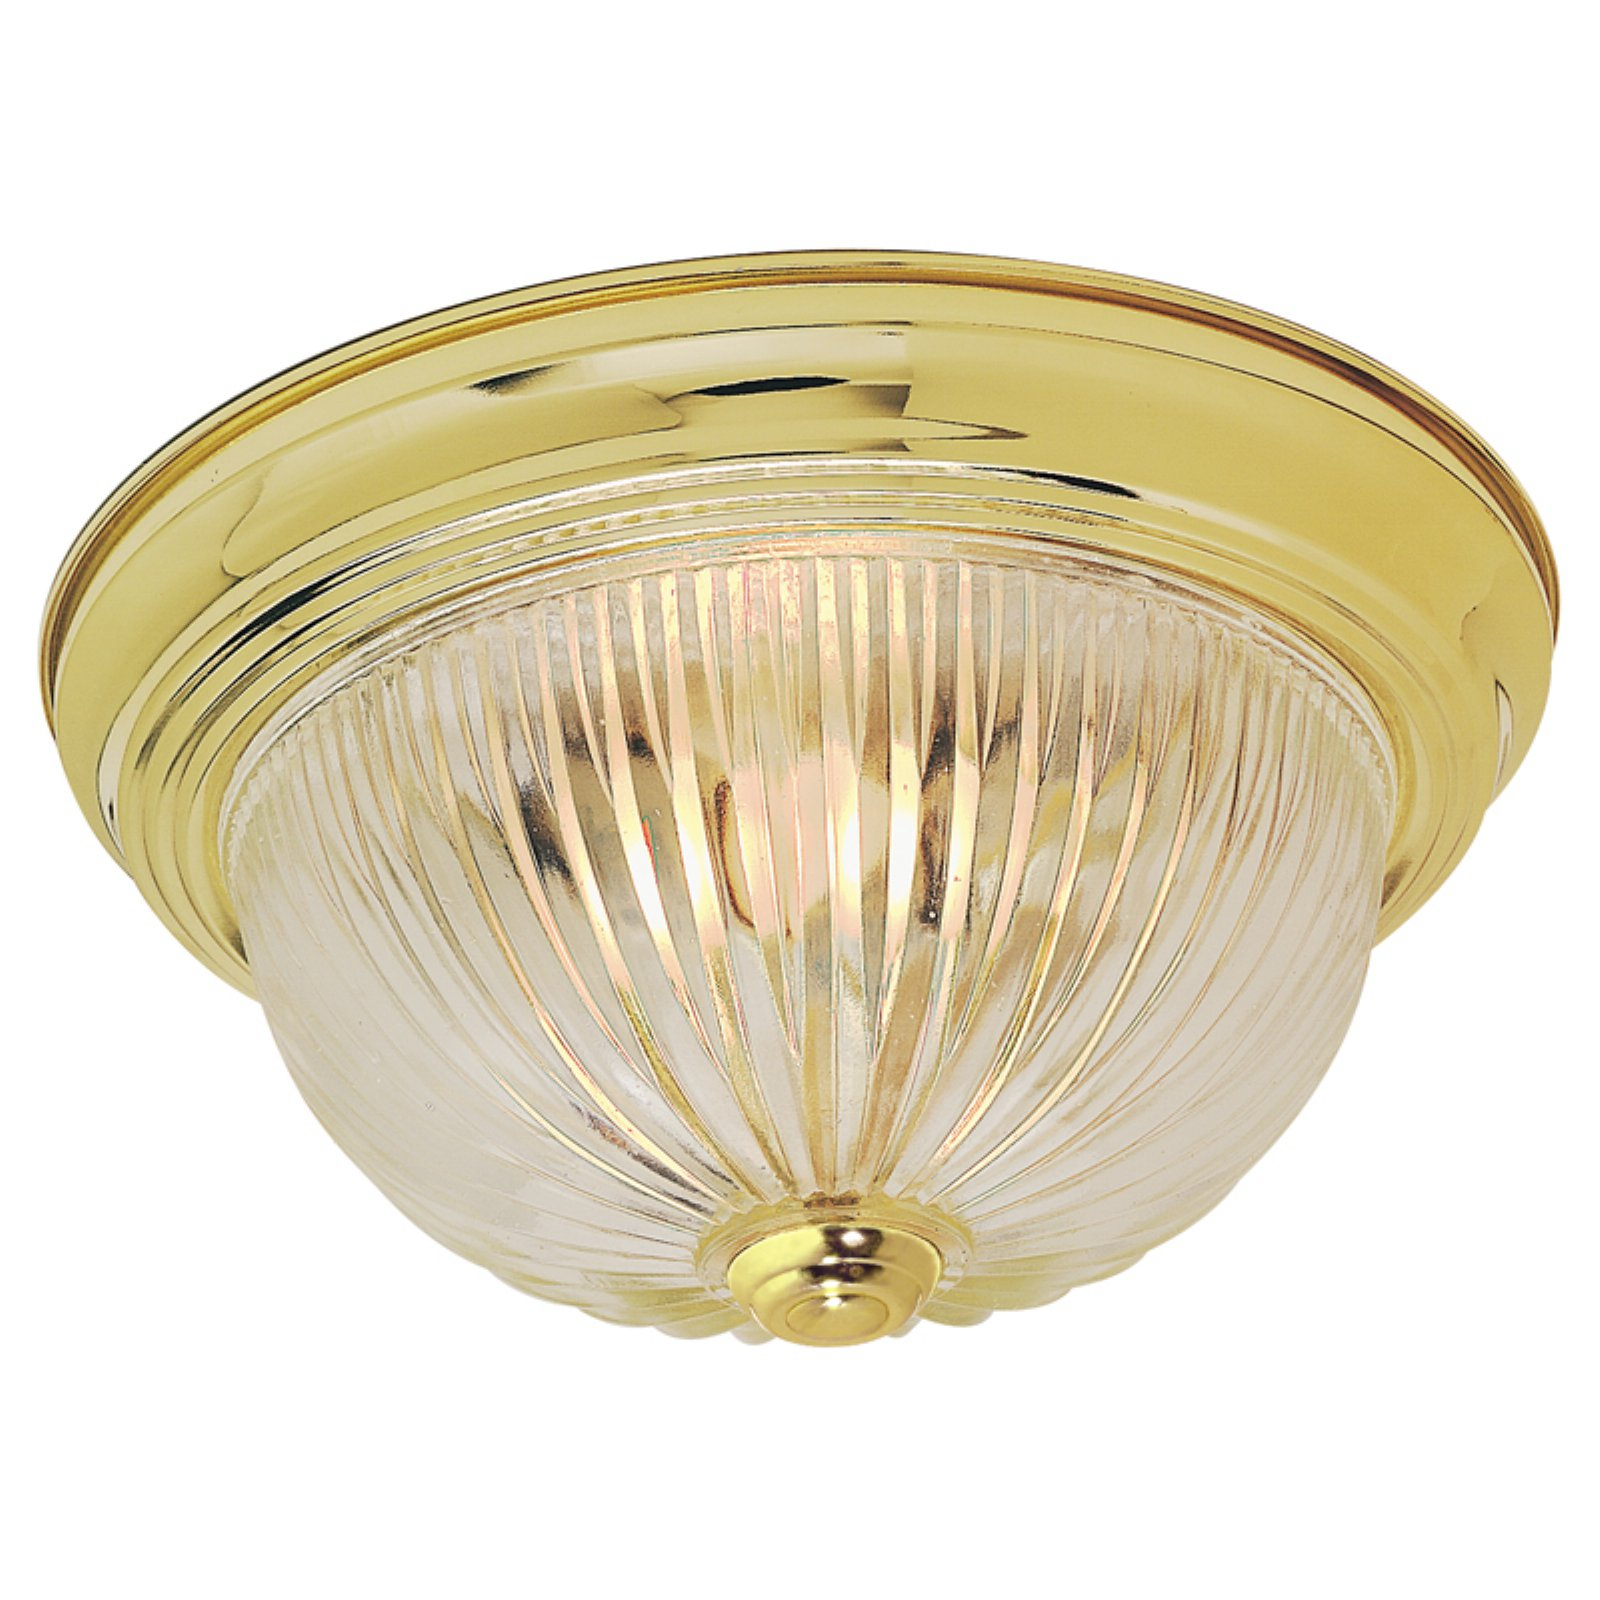 Nuvo Lighting  76/092  Ceiling Fixtures  Indoor Lighting  Flush Mount  ;Polished Brass